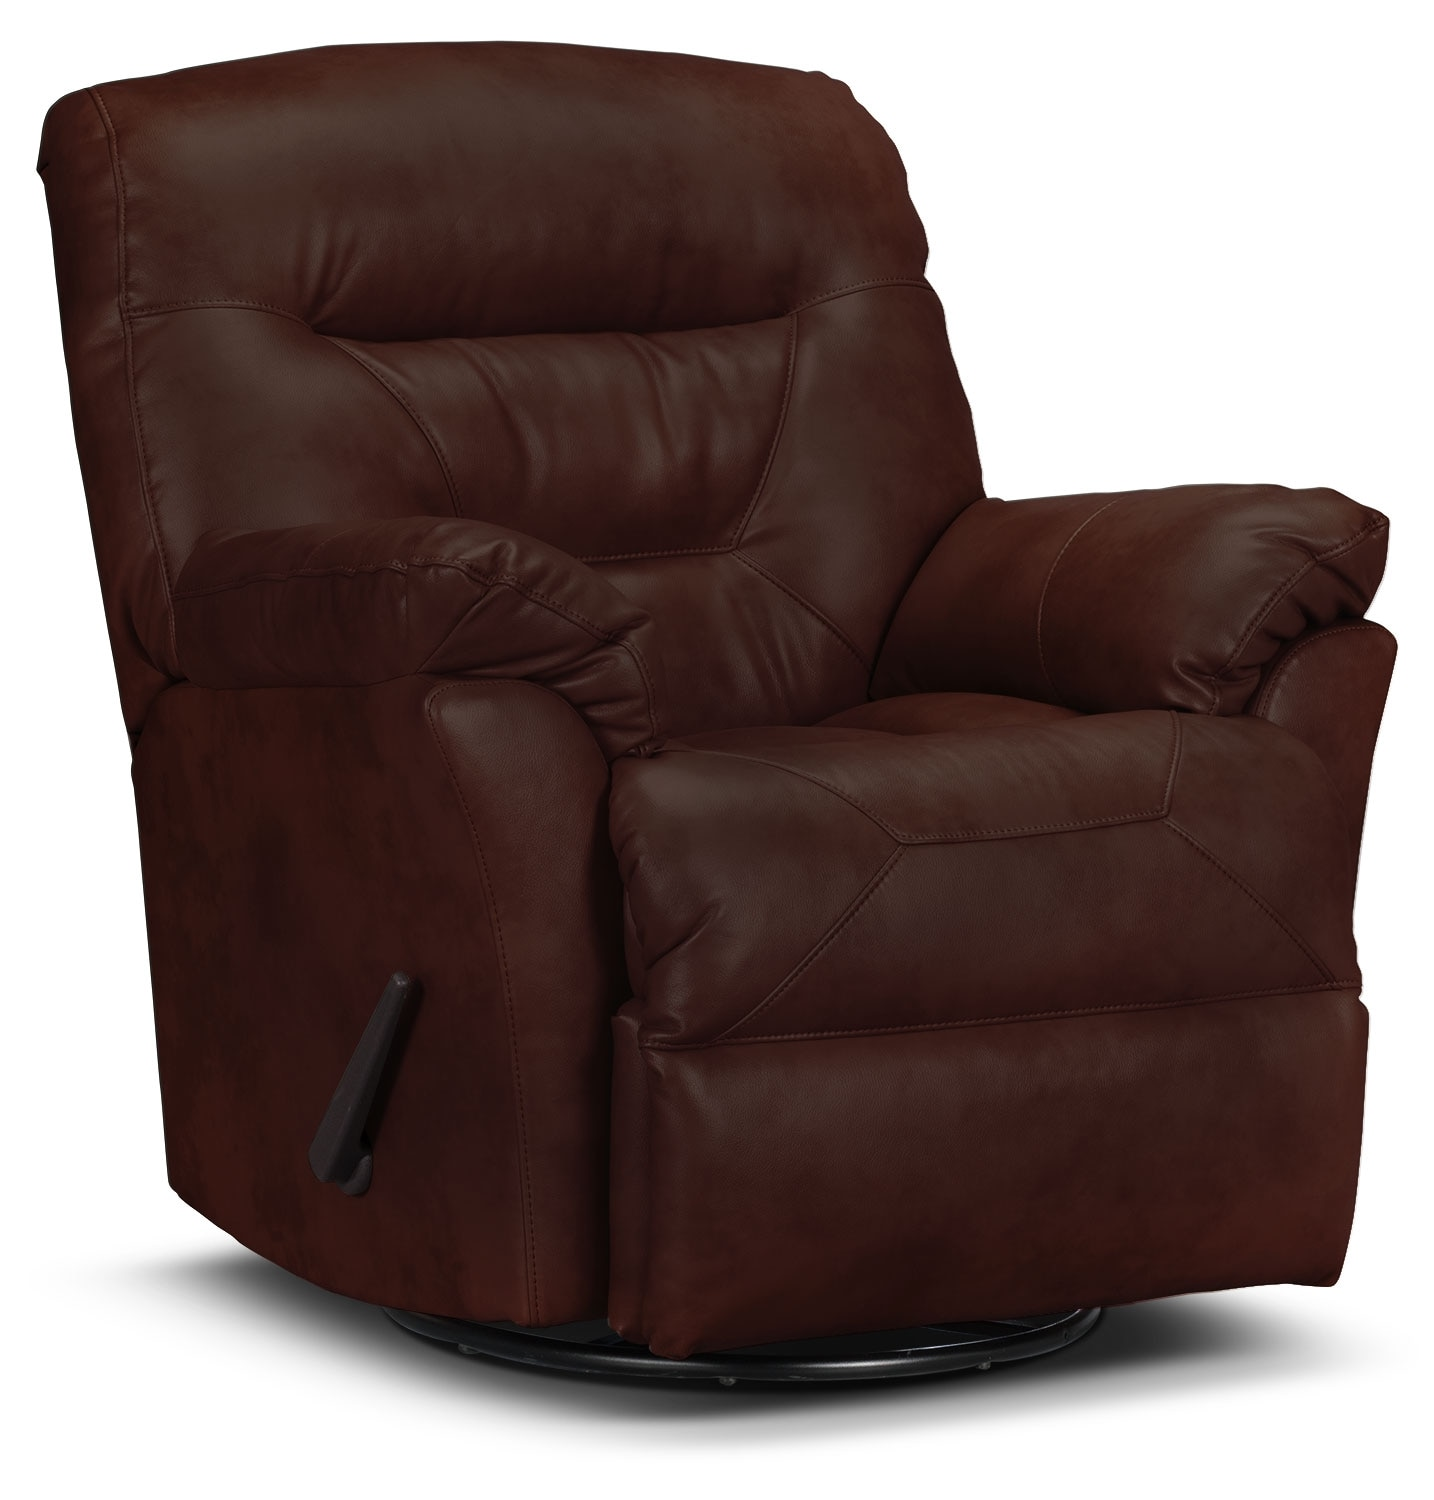 Living Room Furniture - Designed2B Recliner 4579 Genuine Leather Swivel Glider Recliner - Walnut